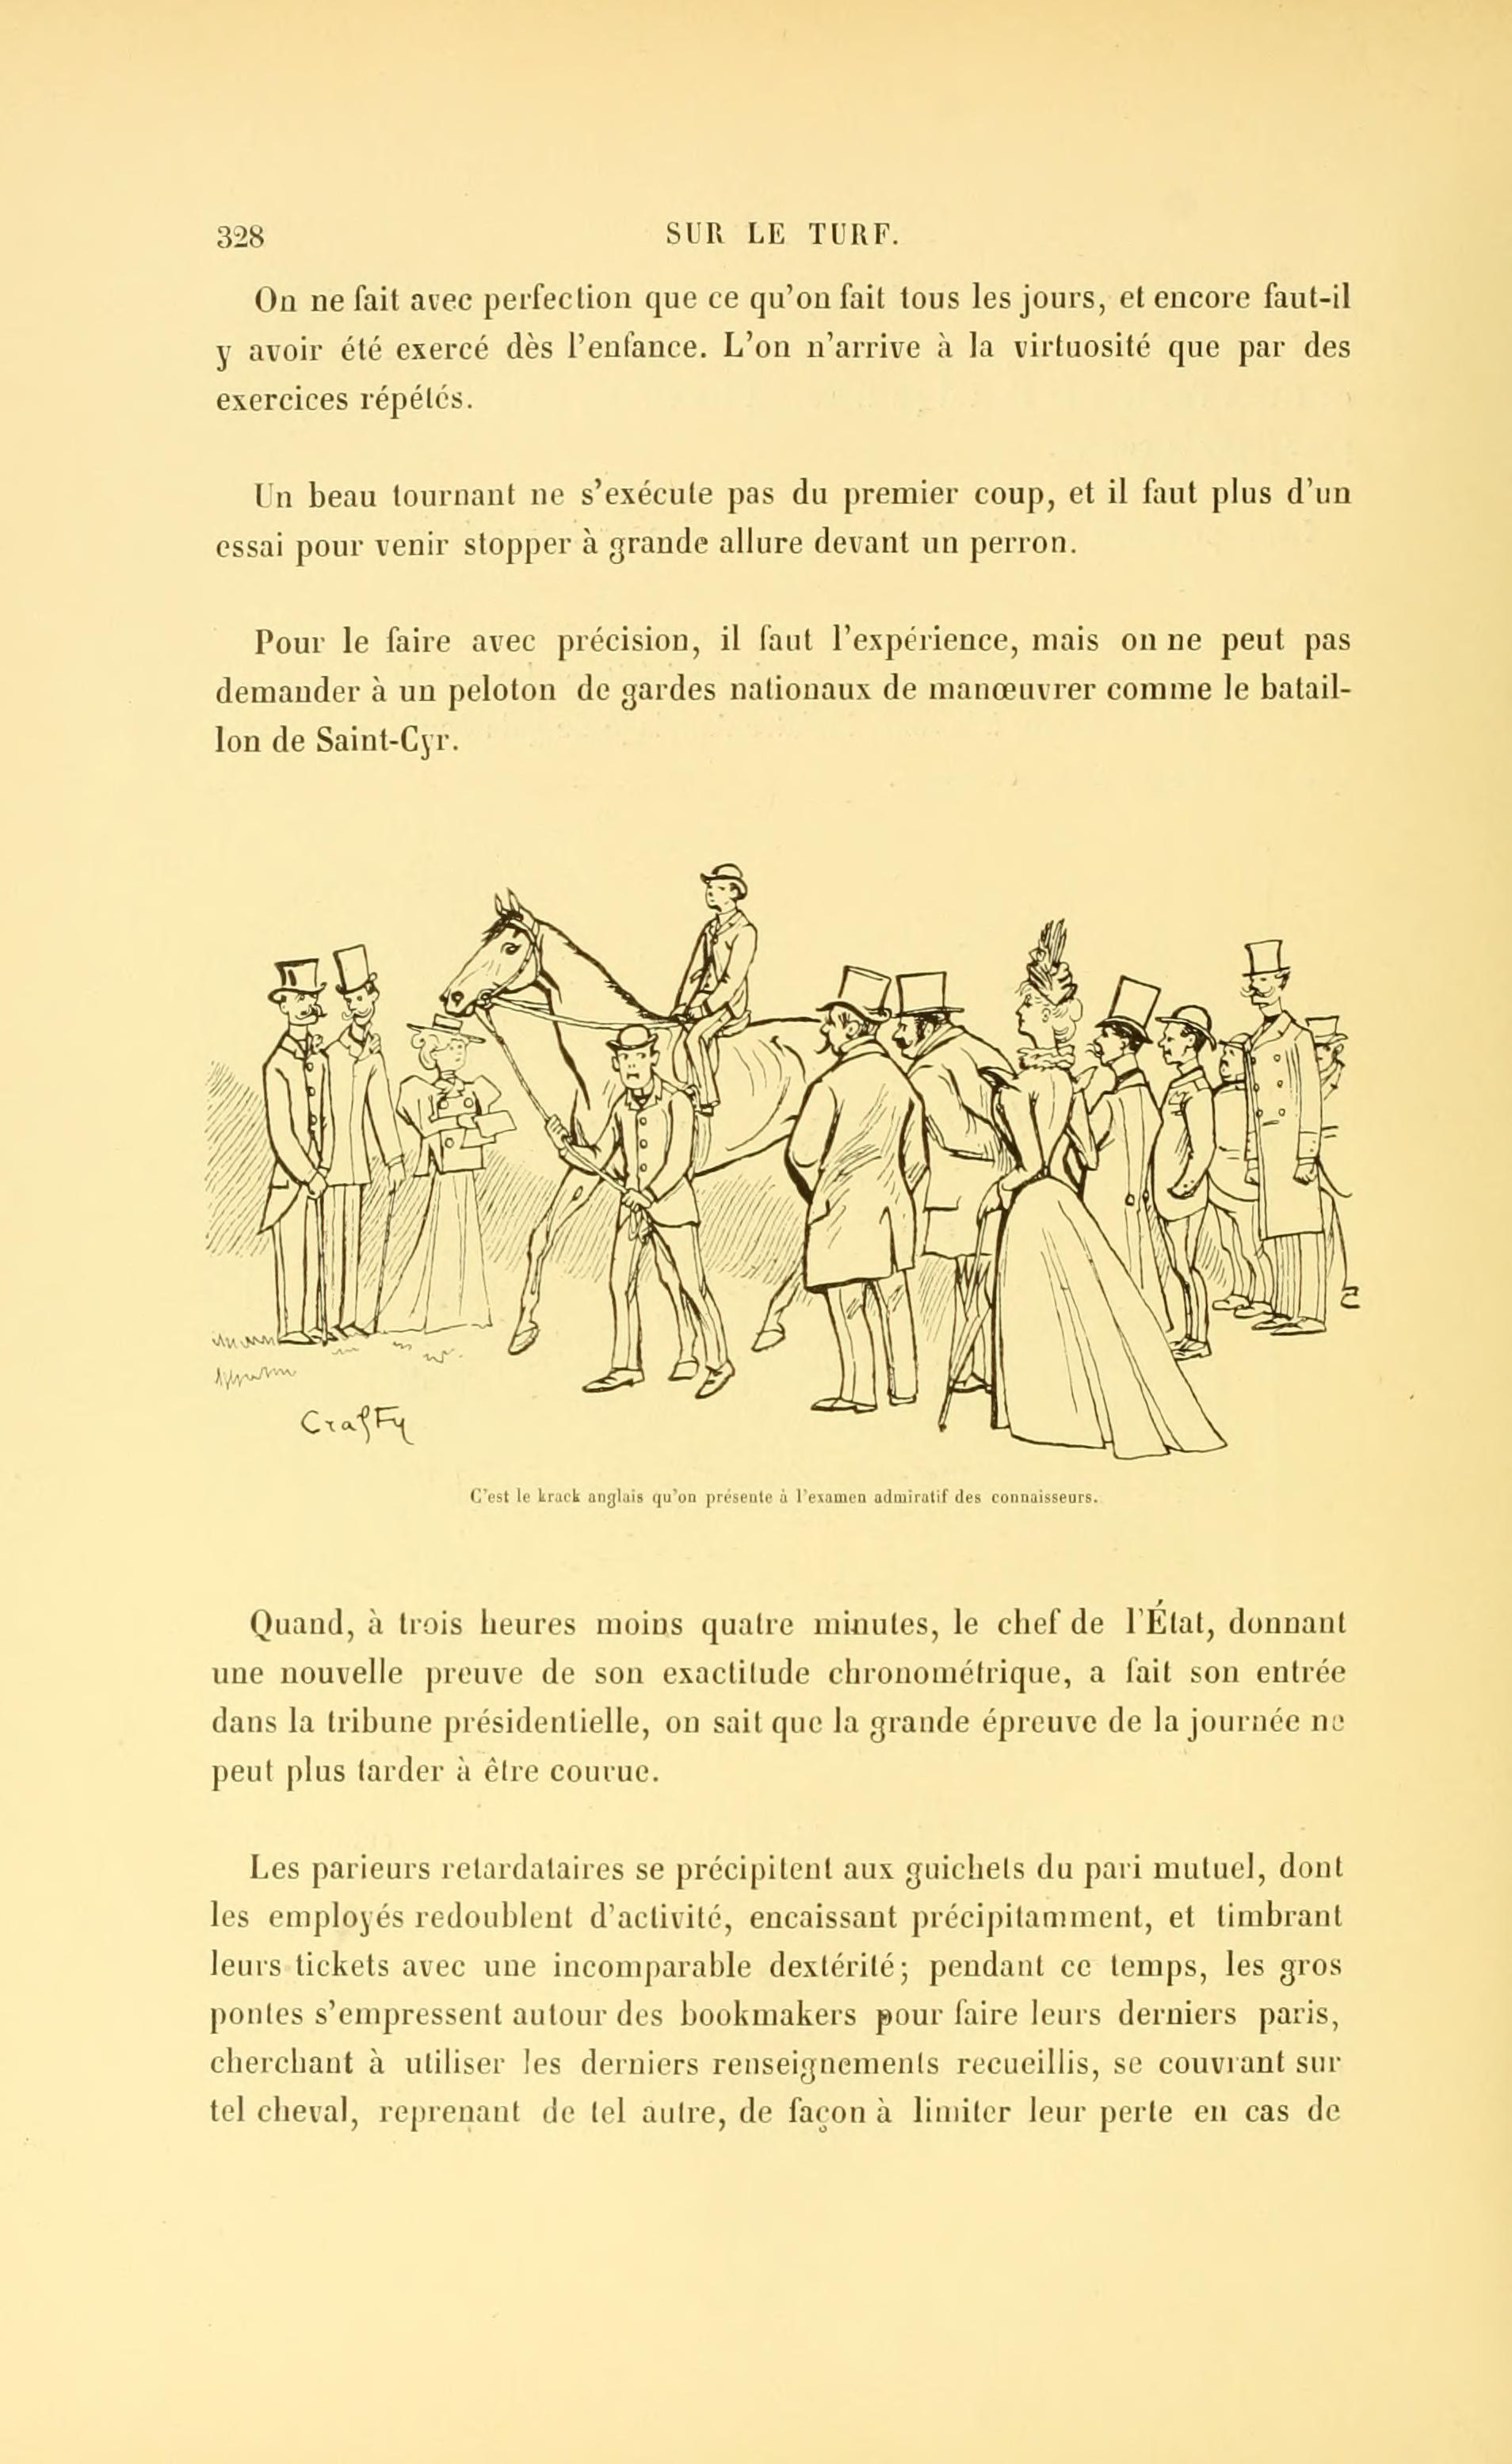 File Sur Le Turf Page 328 Bhl21546221 Jpg Wikimedia Commons